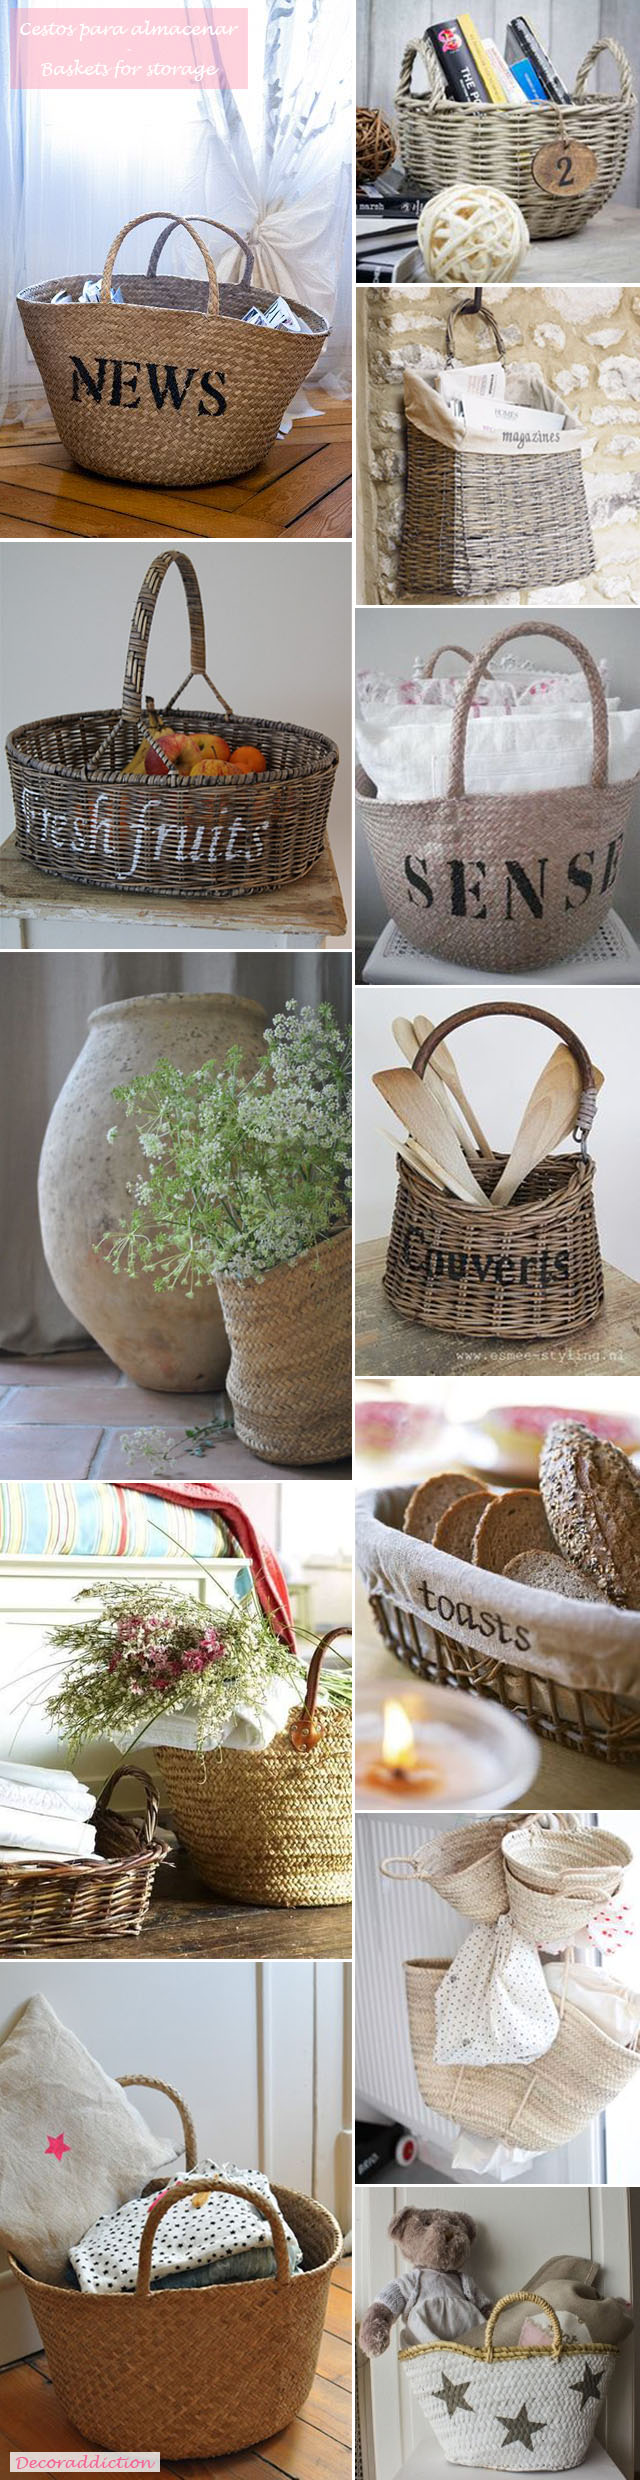 *My new home* Decorar con cestos - Decorate with baskets_almacenamiento